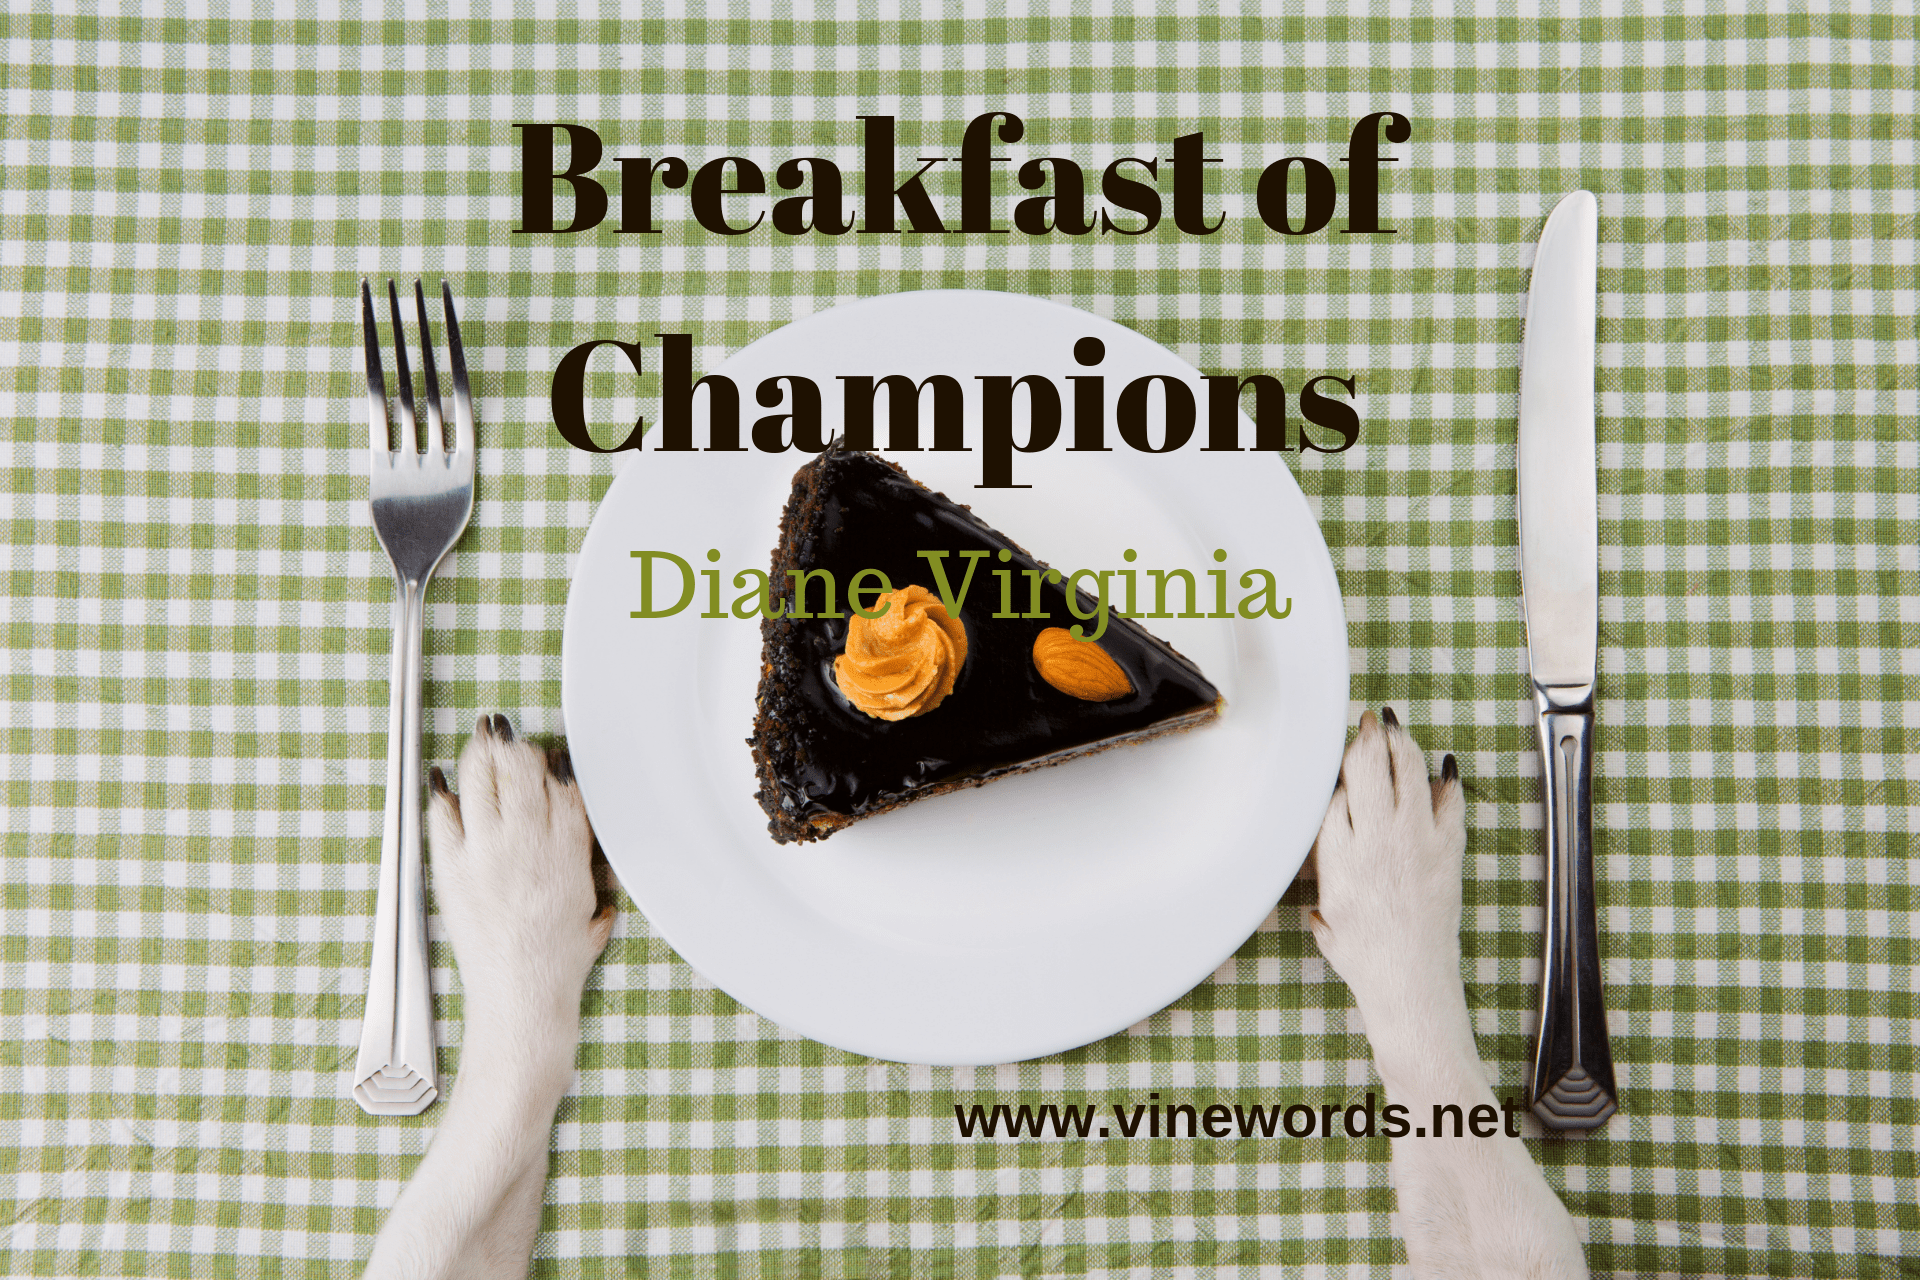 Diane Virginia: Breakfast of Champions (3-Min)